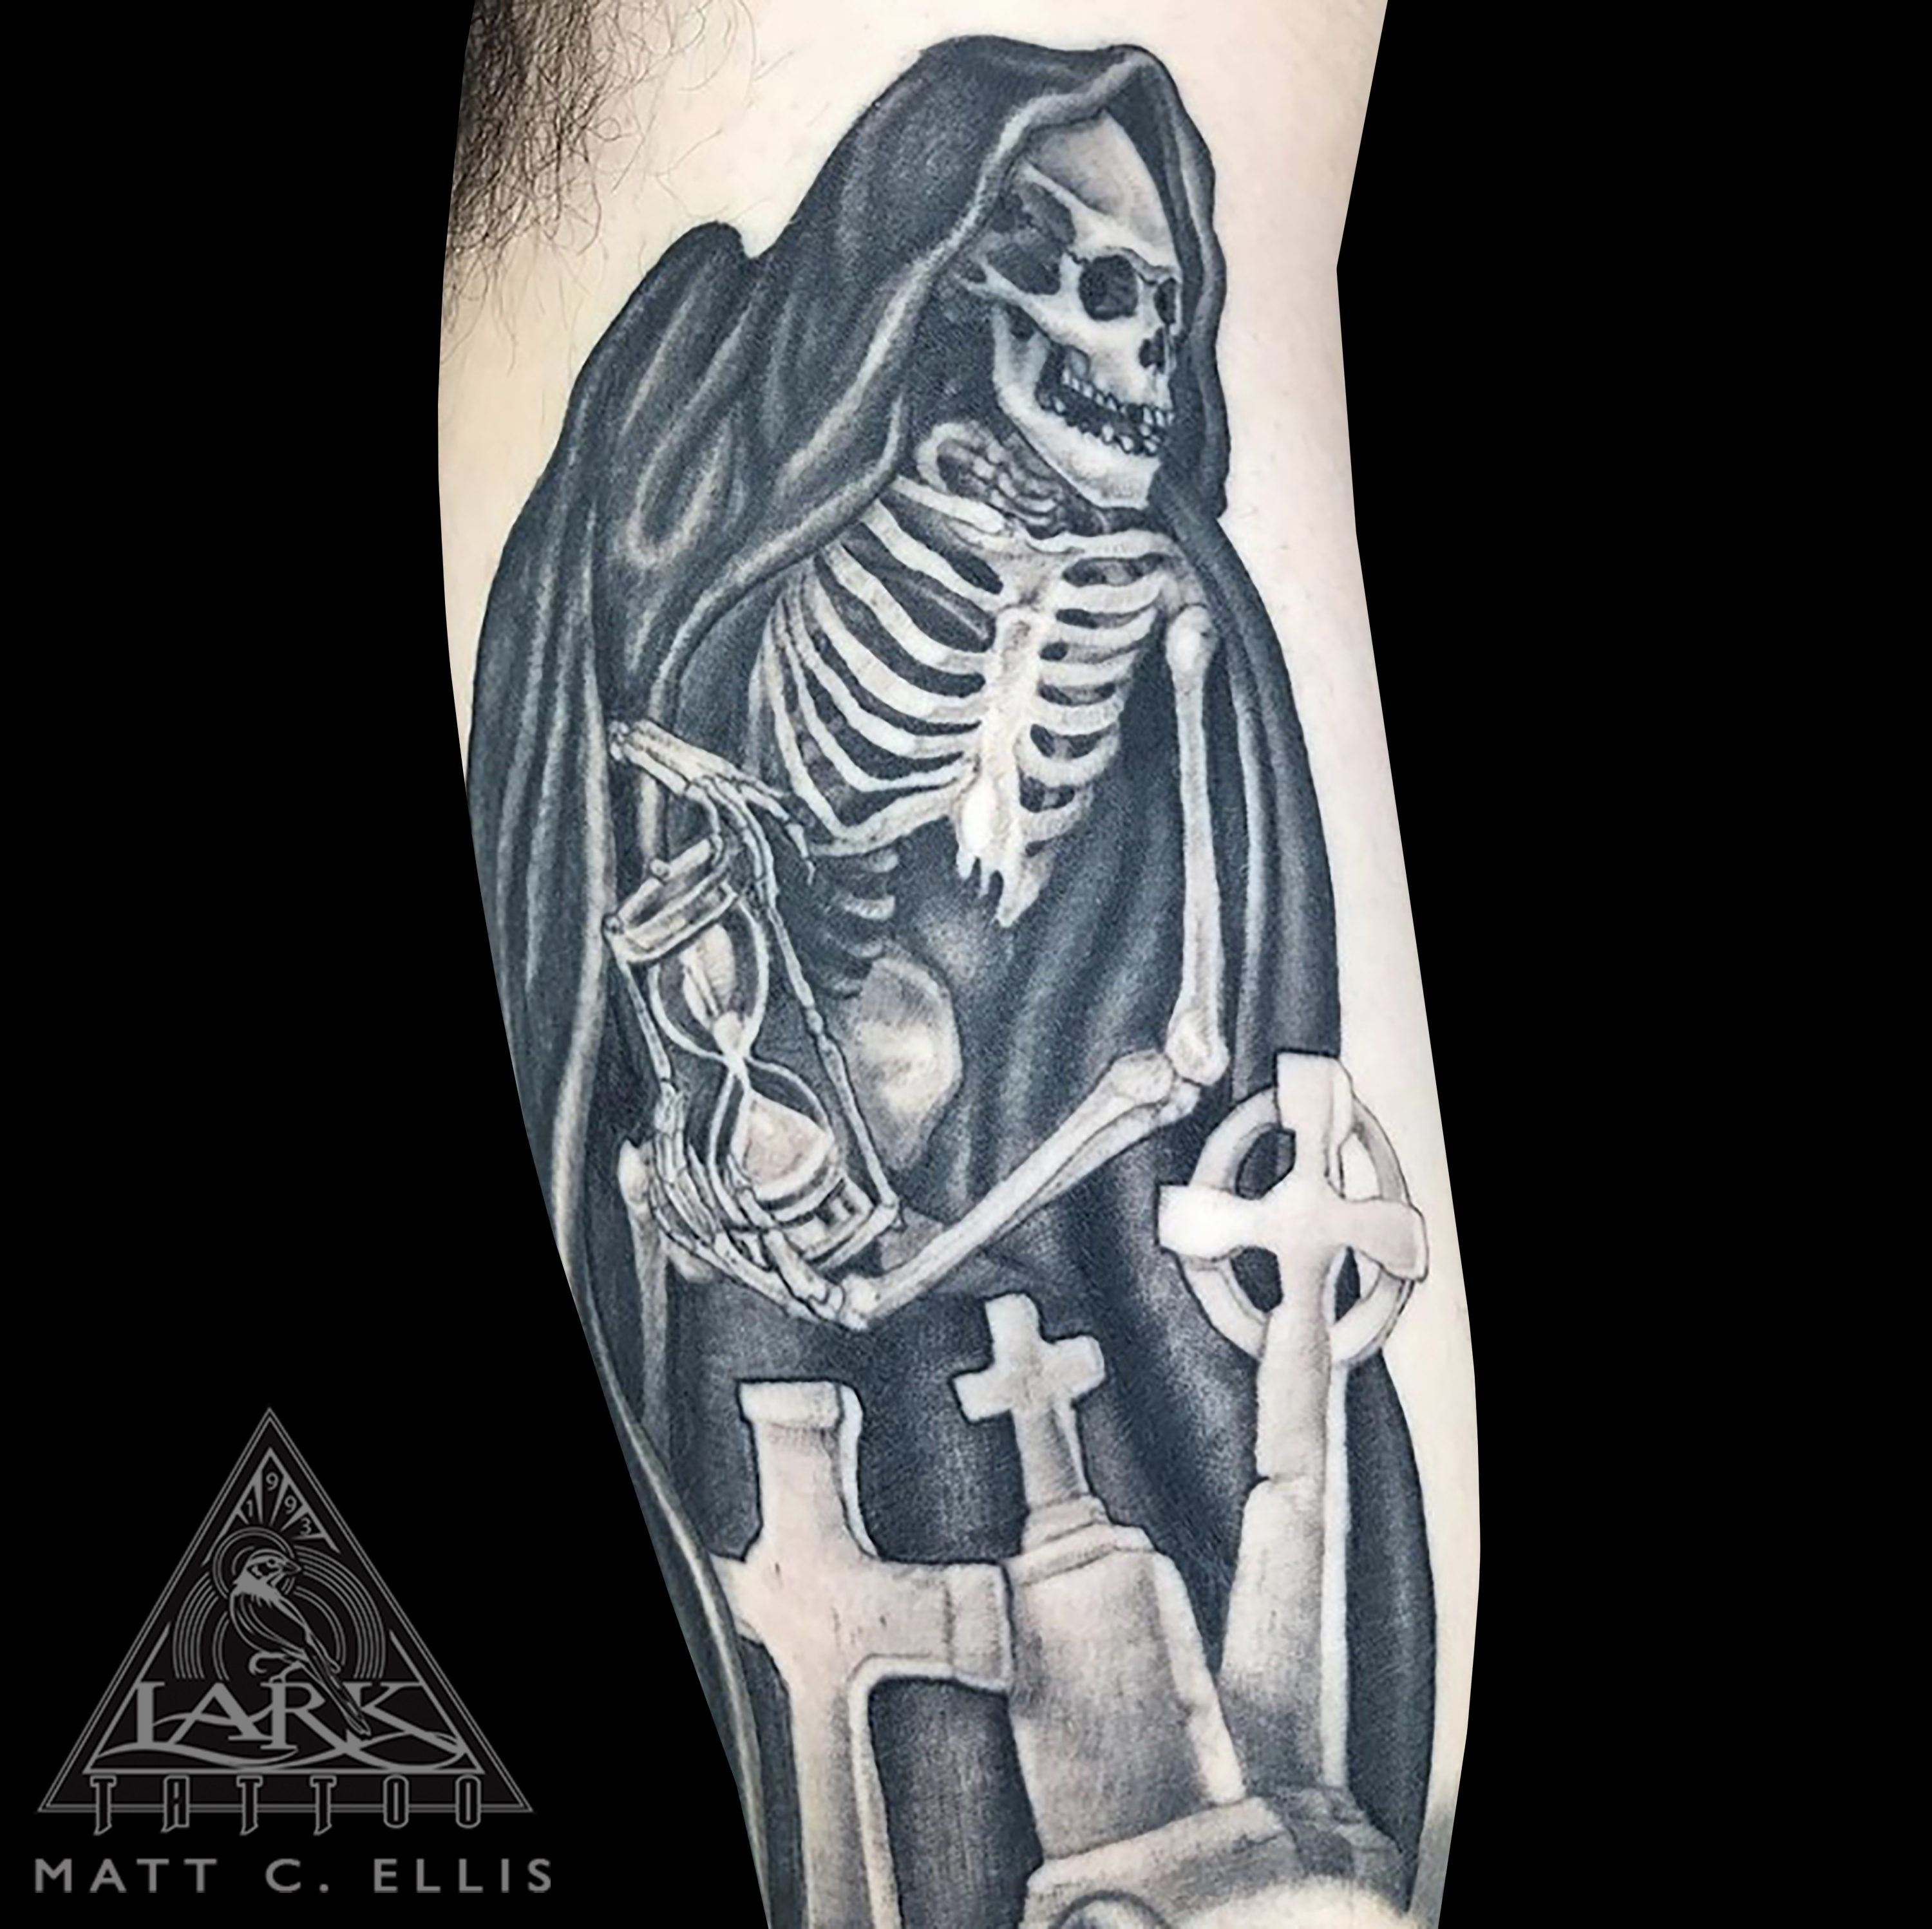 #LarkTattoo #Tattoo #Tattoos #GrimReaper #GrimReaperTattoo #Skeleton #SkeletonTattoo #Death #DeathTattoo #BNG #BNGInkSociety #BNGTattoo #BlackAndGray #BlackAndGrayTattoo #BlackAndGrey #BlackAndGreyTattoo #Scary #ScaryTattoo #Halloween #HalloweenTattoo #TattooArtist #Tattoist #Tattooer #LongIslandTattooArtist #LongIslandTattooer #LongIslandTattoo #TattooOfTheDay #Tat #Tats #Tatts #Tatted #Inked #Ink #TattooInk #AmazingInk #AmazingTattoo #BodyArt #LarkTattooWestbury #Westbury #LongIsland #NY #NewYork #USA #Art #Tattedup #InkedUp #LarkTattoos